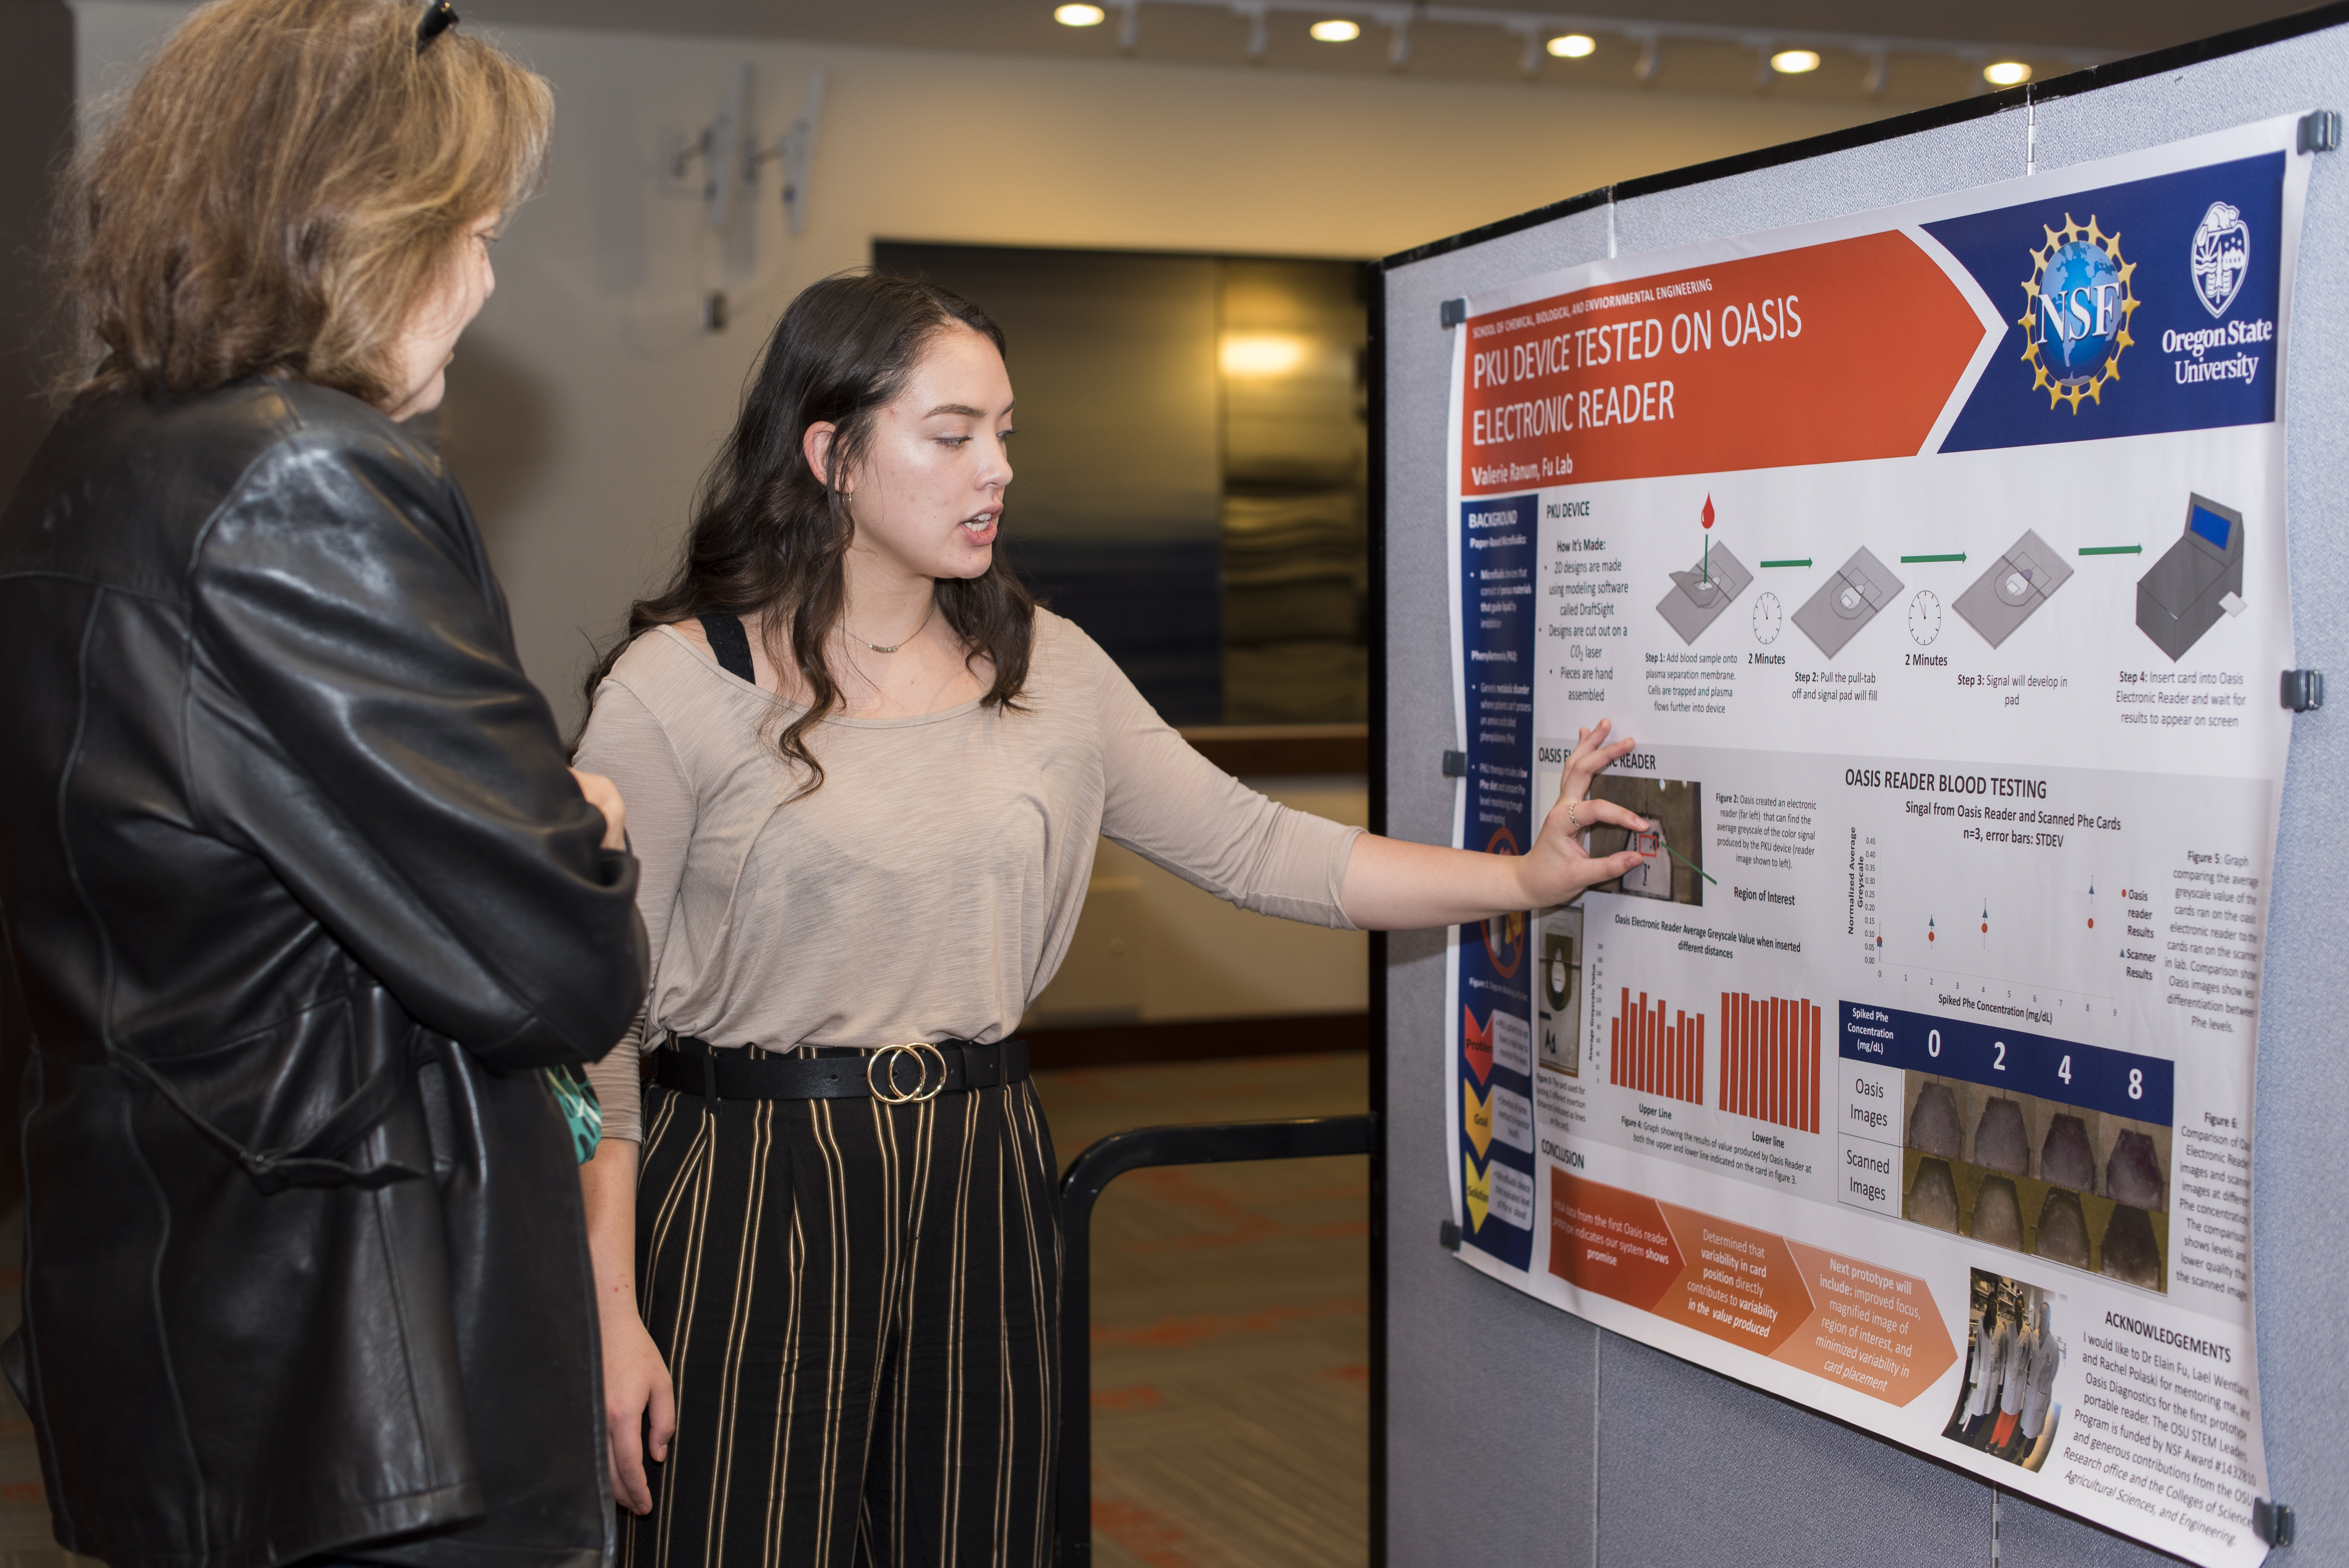 "Female student presenting her research poster titled ""PKU Device Tested on Oasis Electronic Reader"" to a woman"